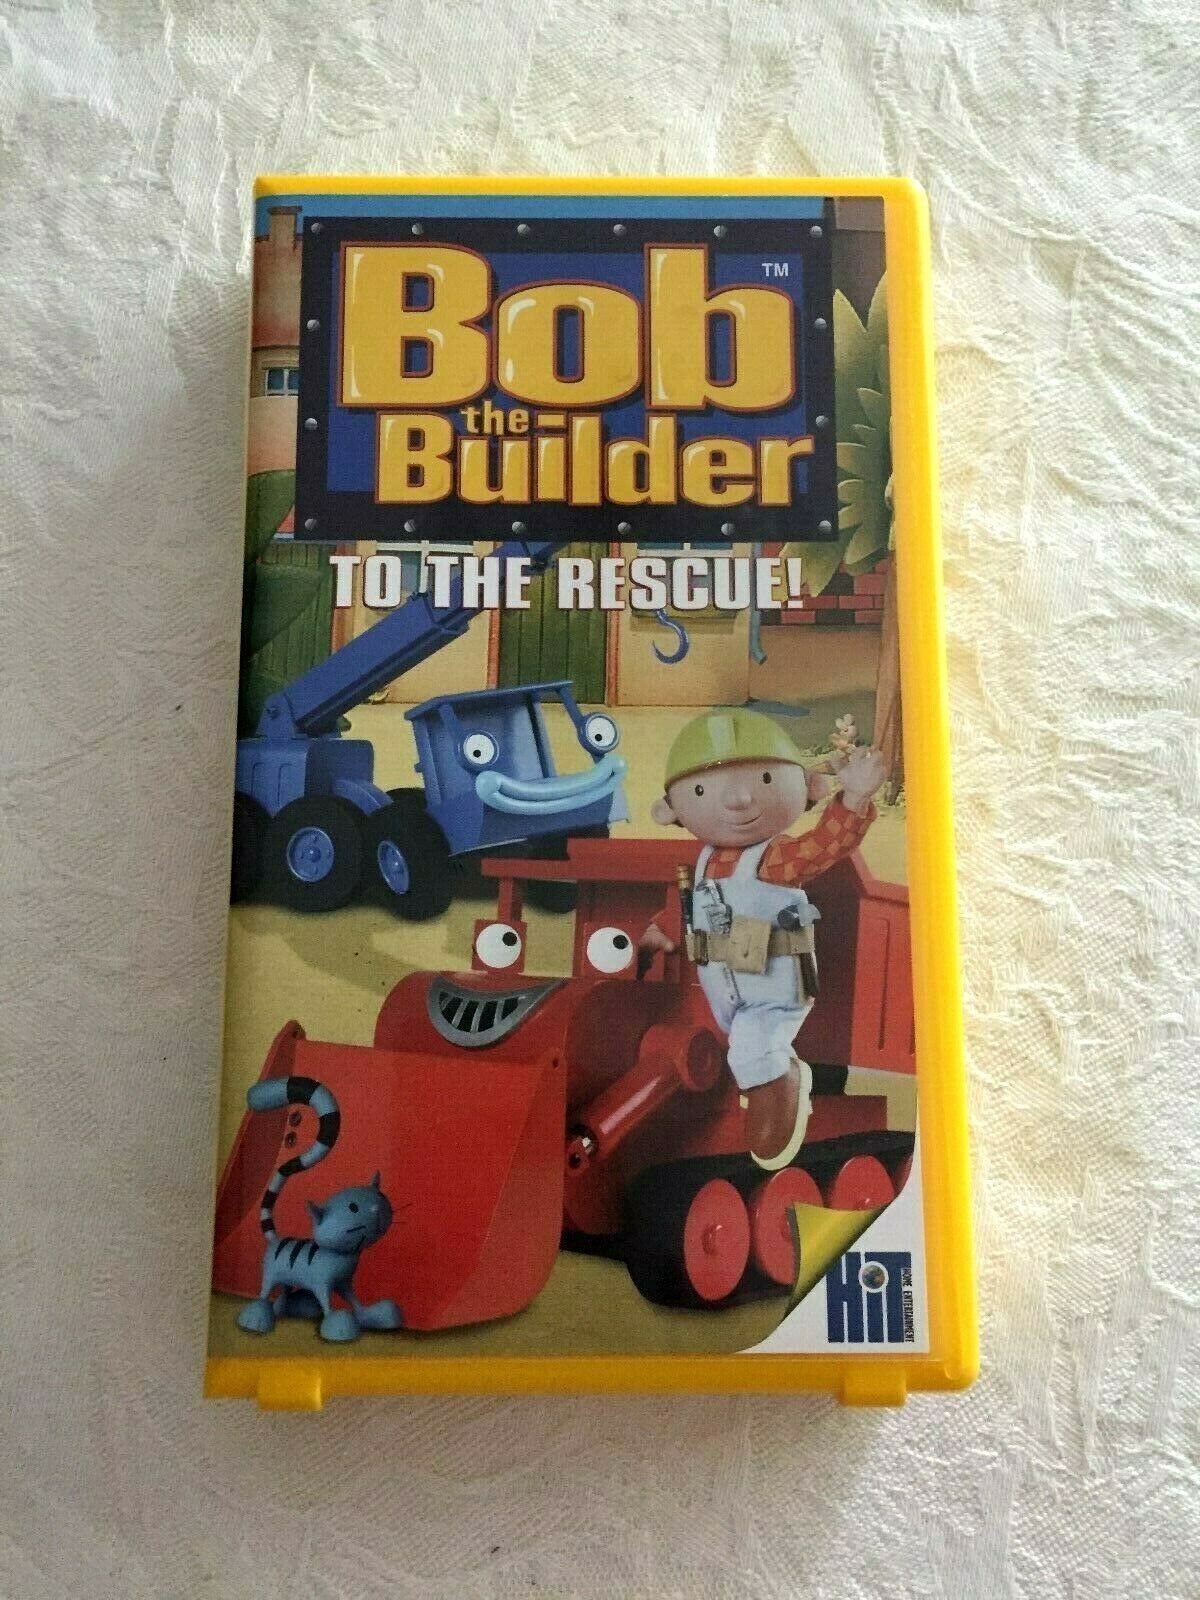 Bob the Builder: To The Rescue (2001-2003 VHS)